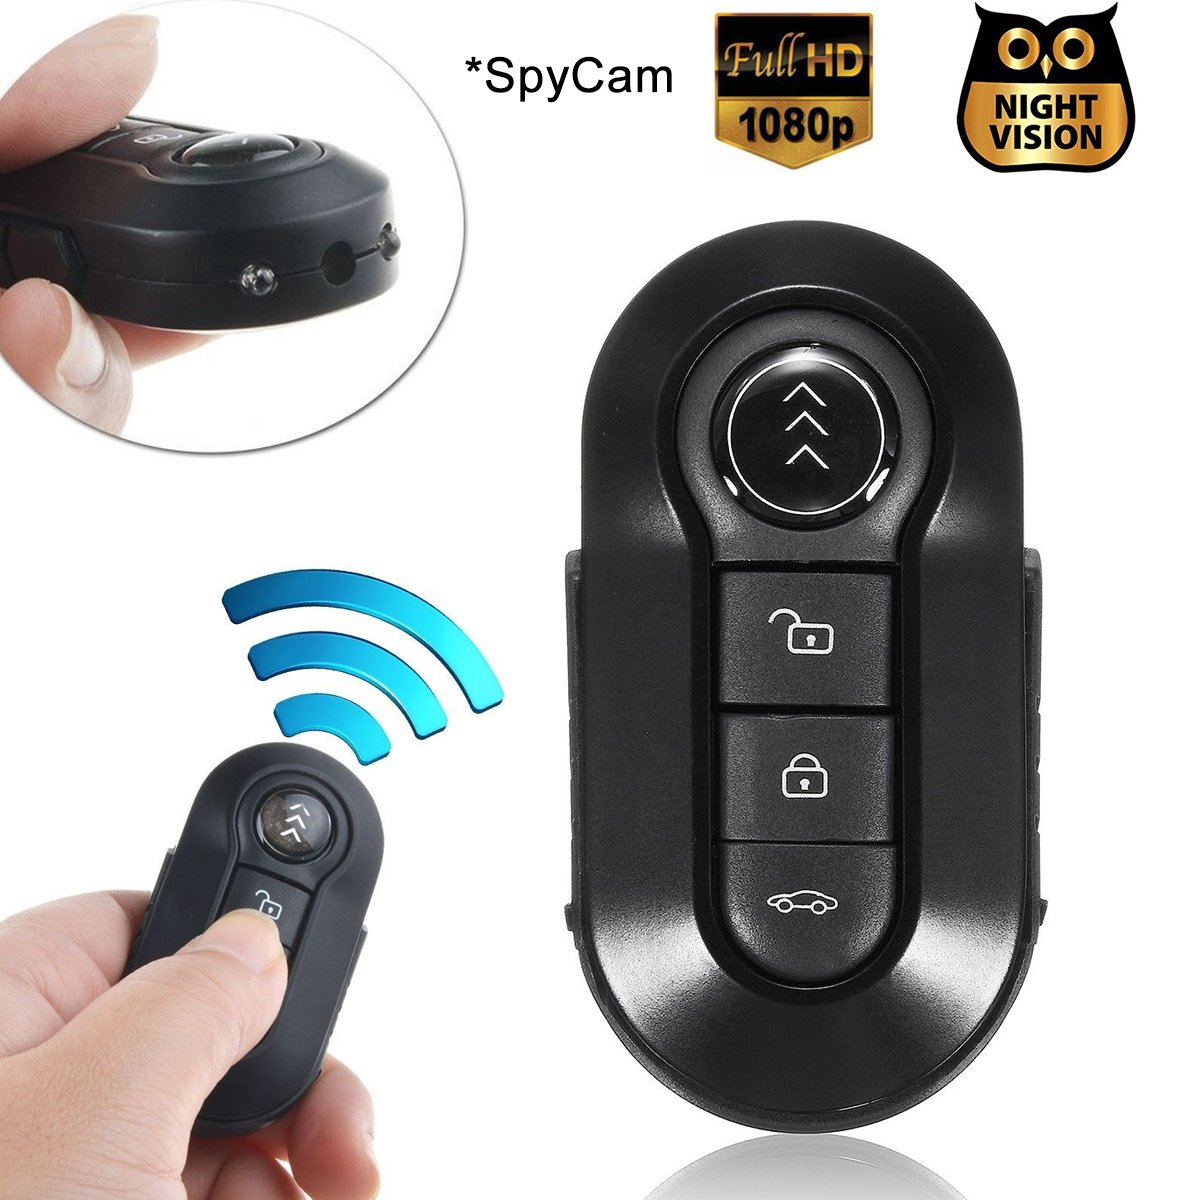 Amazon.com : Mini Hidden Spy Camera, Bysameyee 1080P Hidden Cam with Night Vision, Nanny Camcorder Video Recorder : Camera & Photo